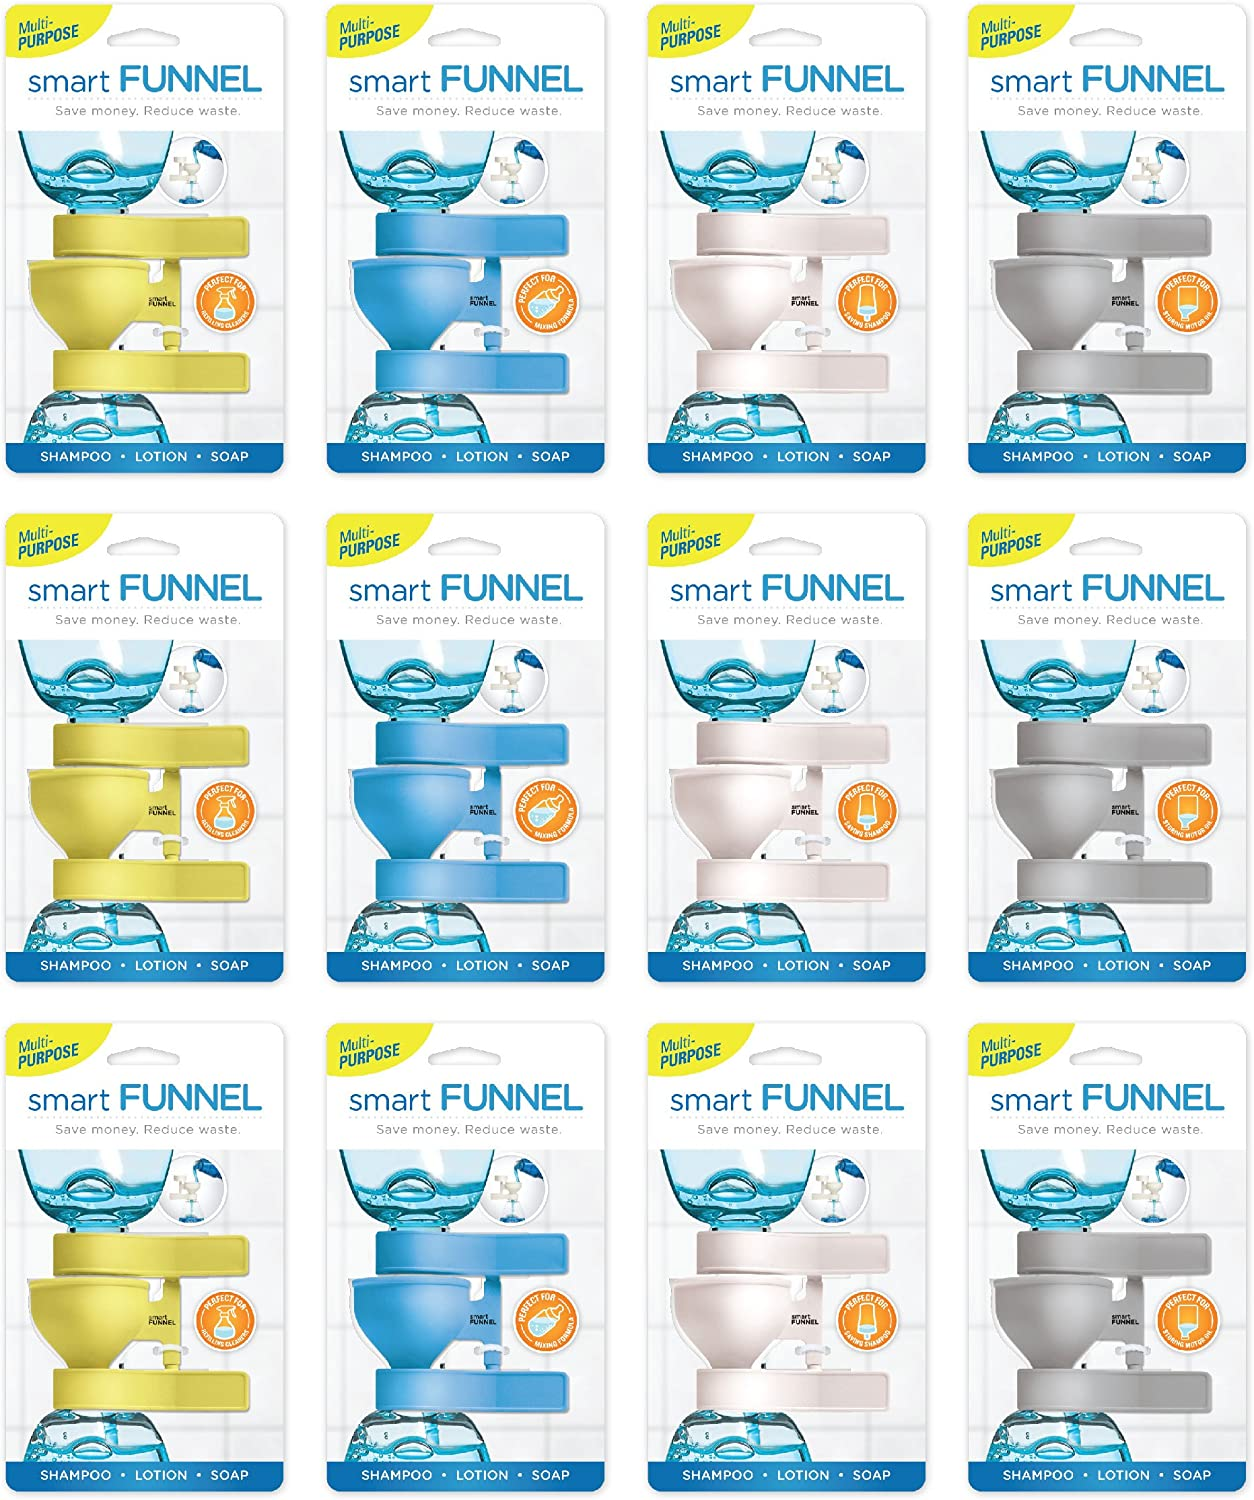 Smart Funnel (12pk - Three of Each color)